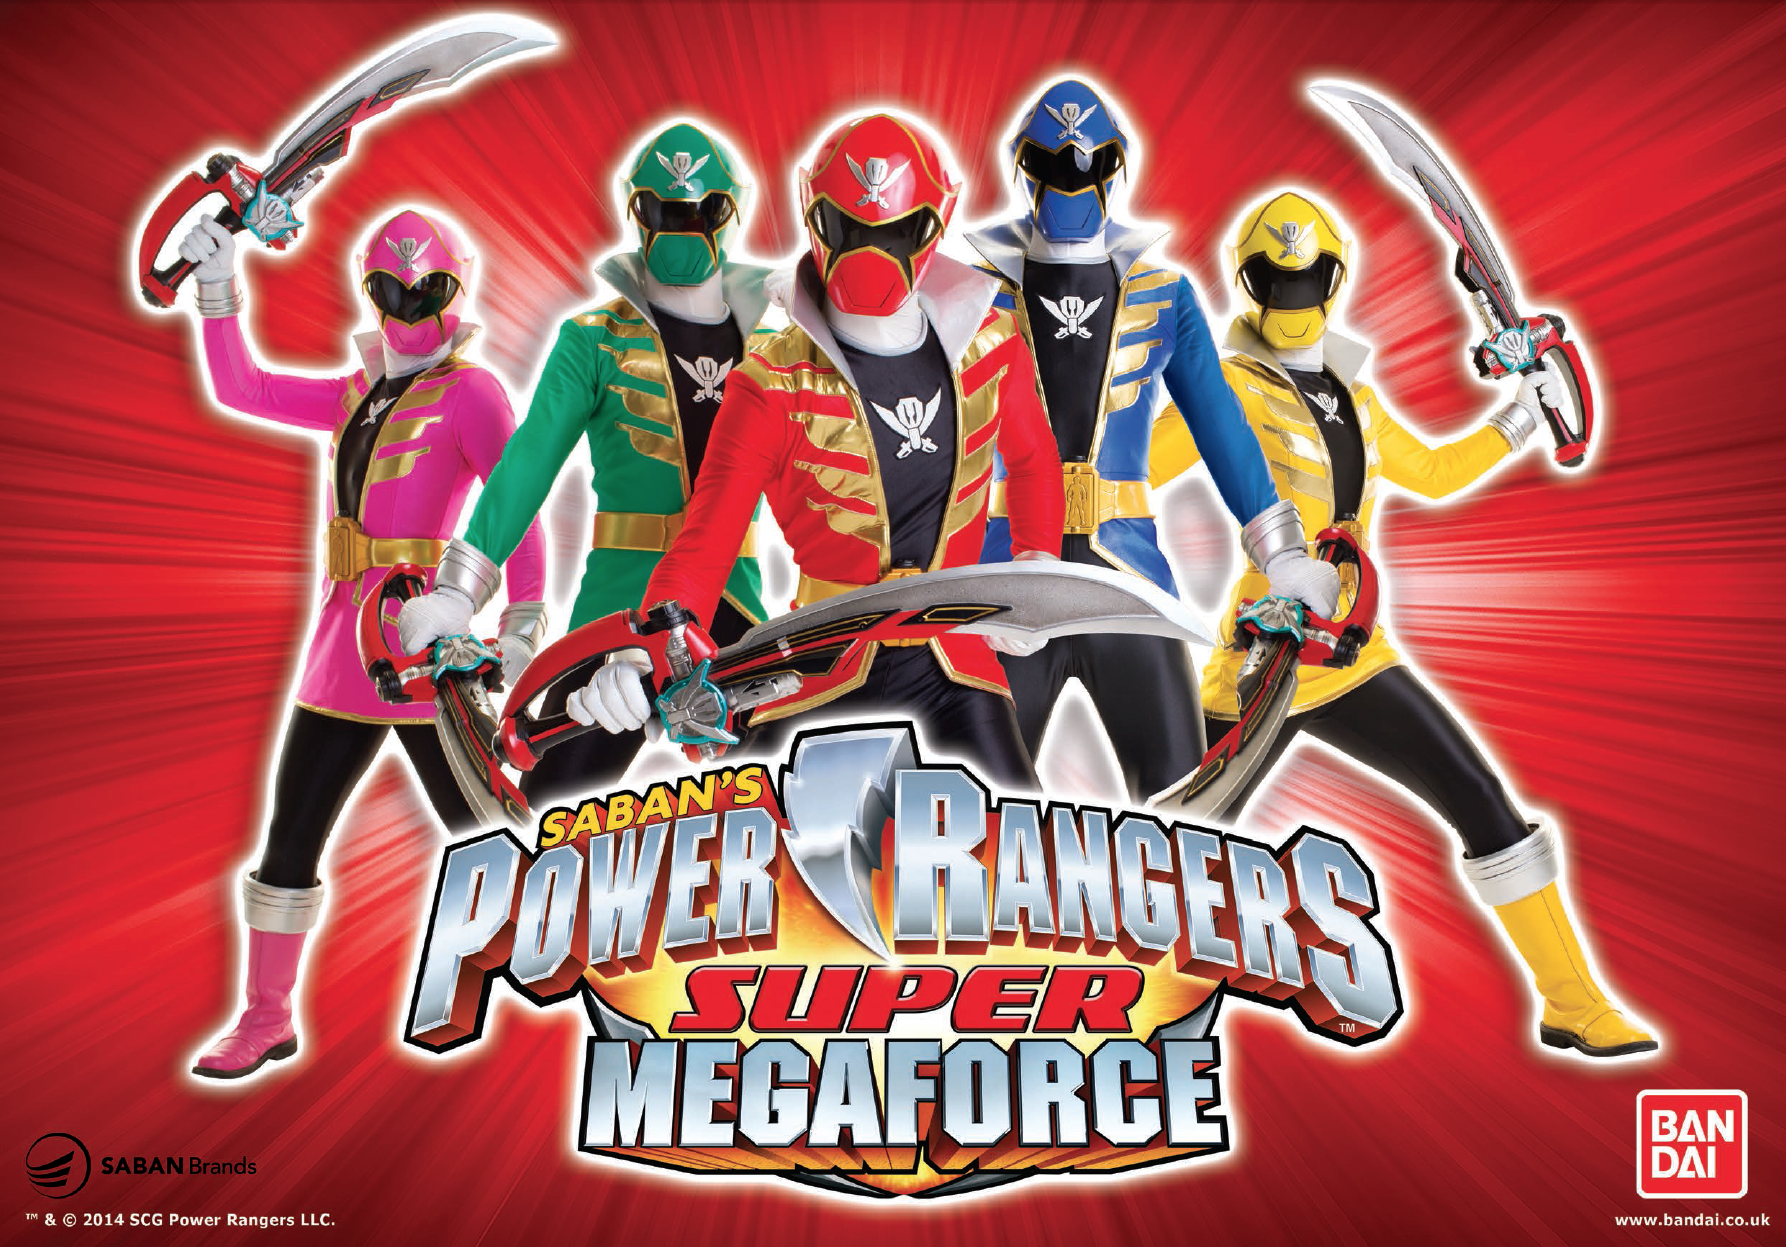 Super Megaforce Power Rangers